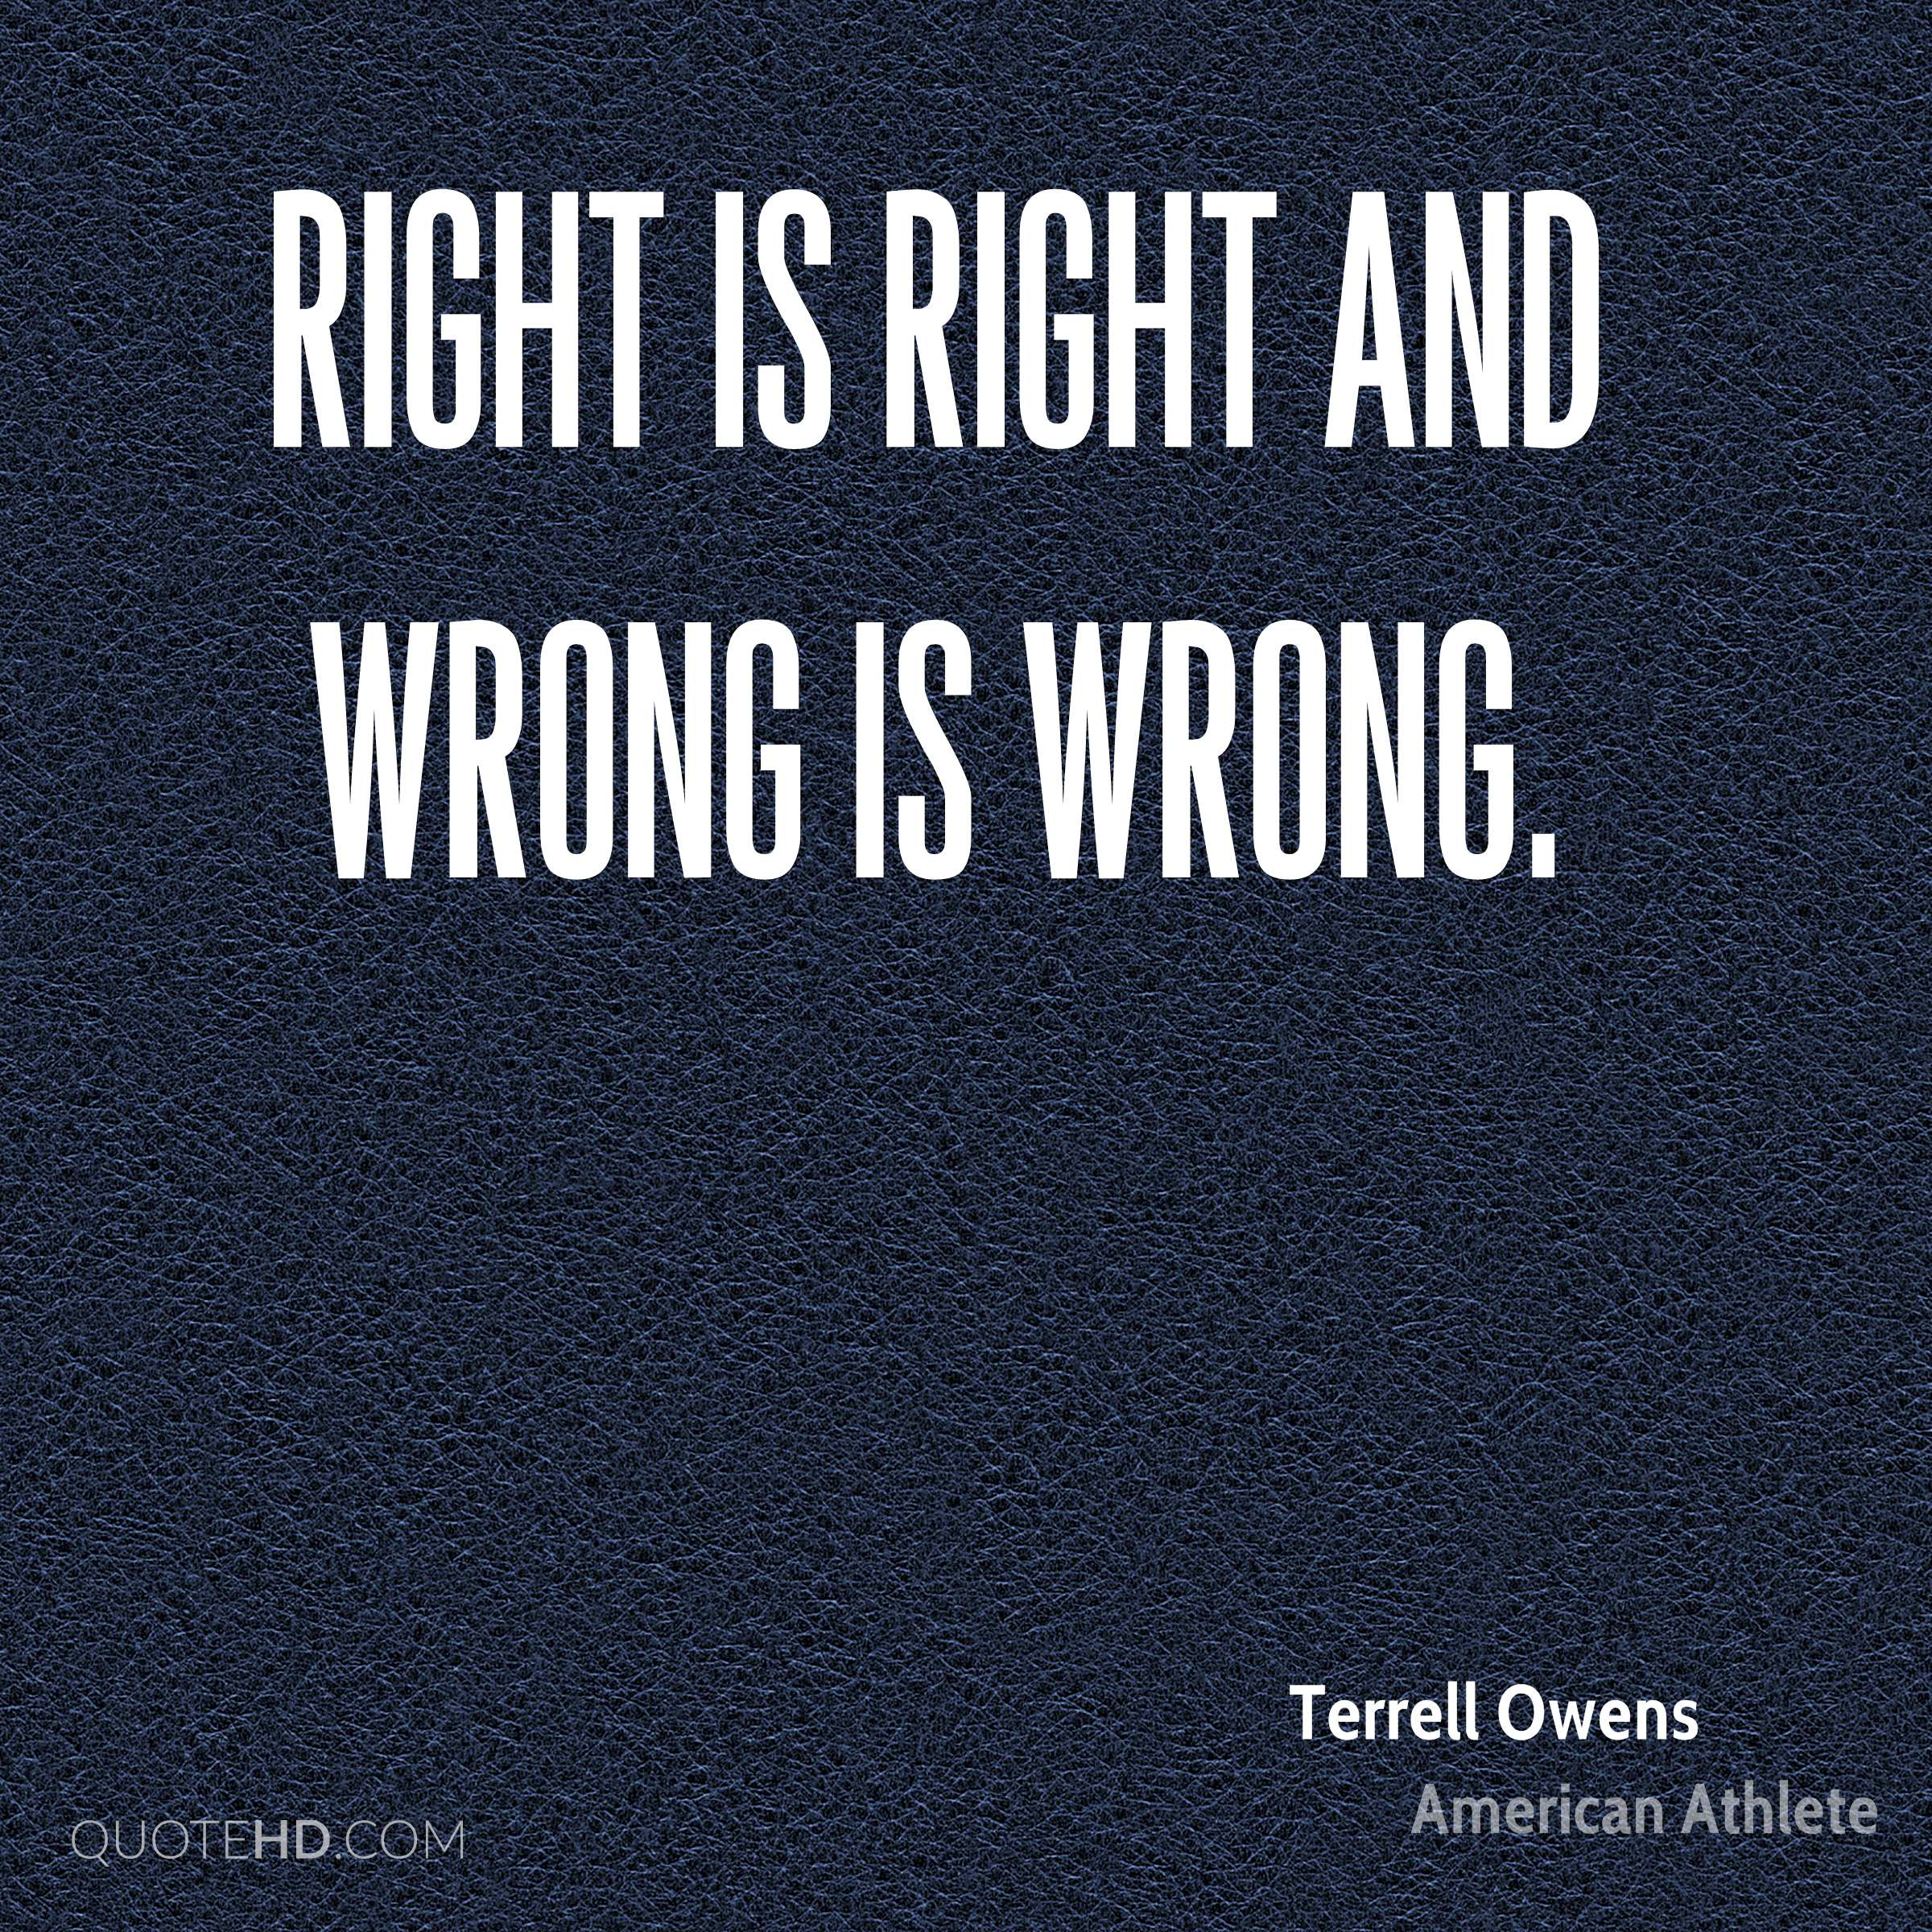 Right is right and wrong is wrong.